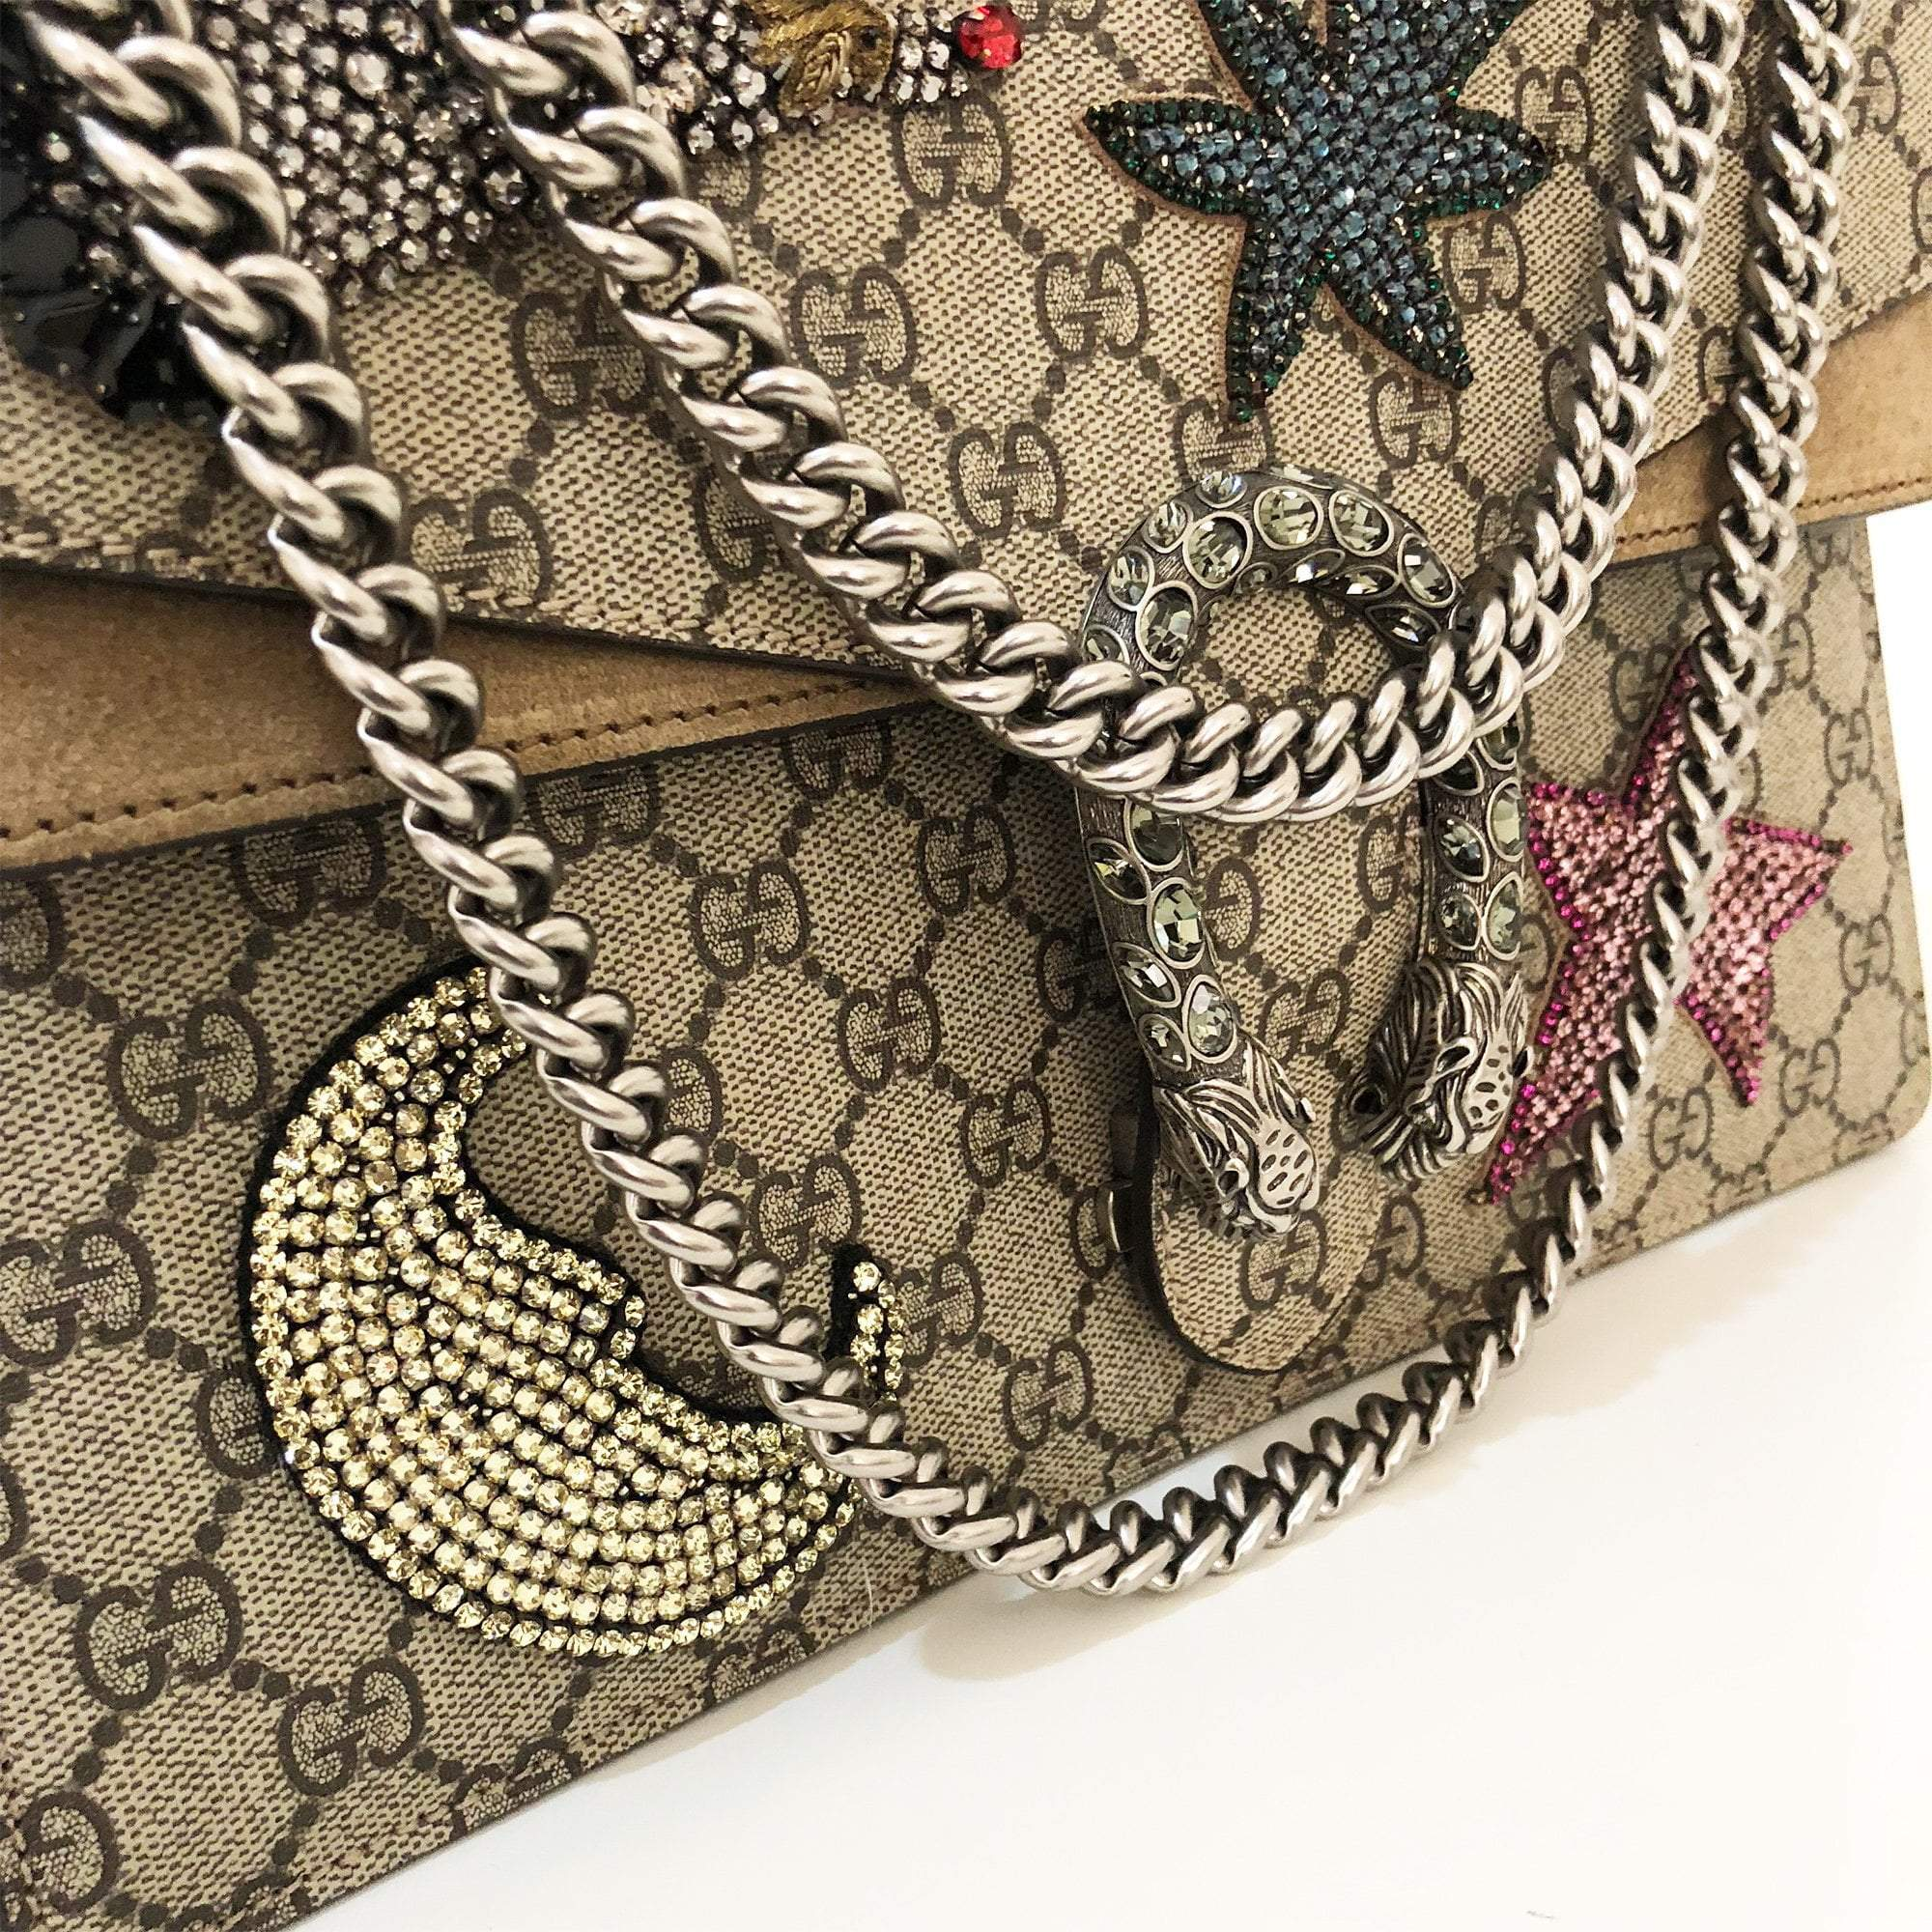 Gucci Dionysus Medium Rhinestone Shoulder Bag